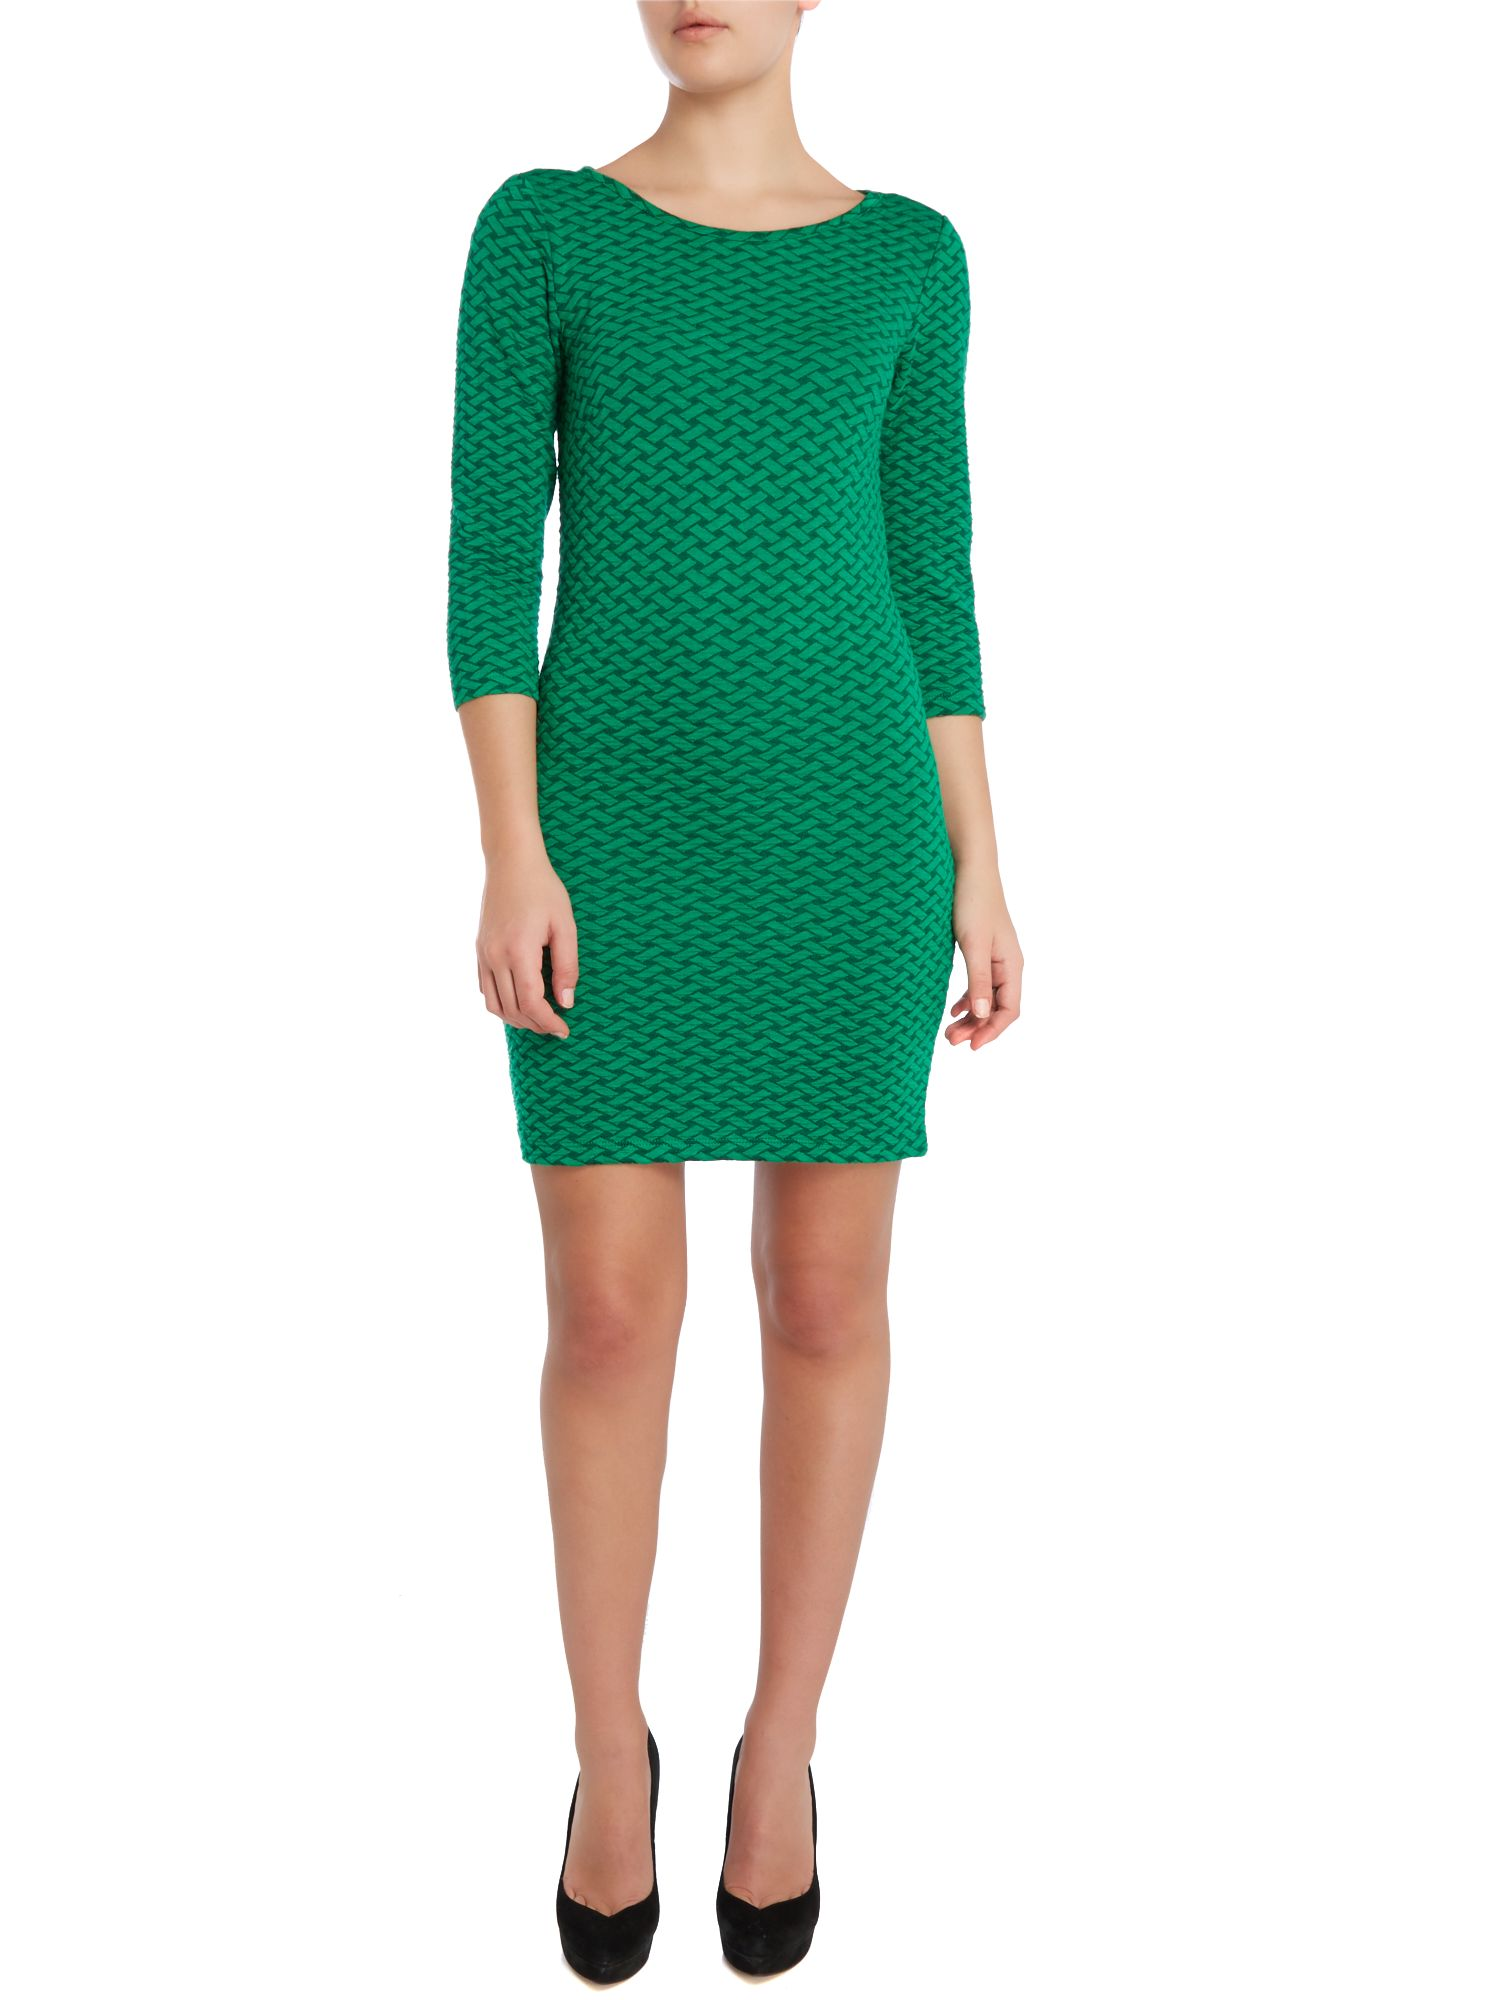 3/4 Sleeve texture bodycon dress